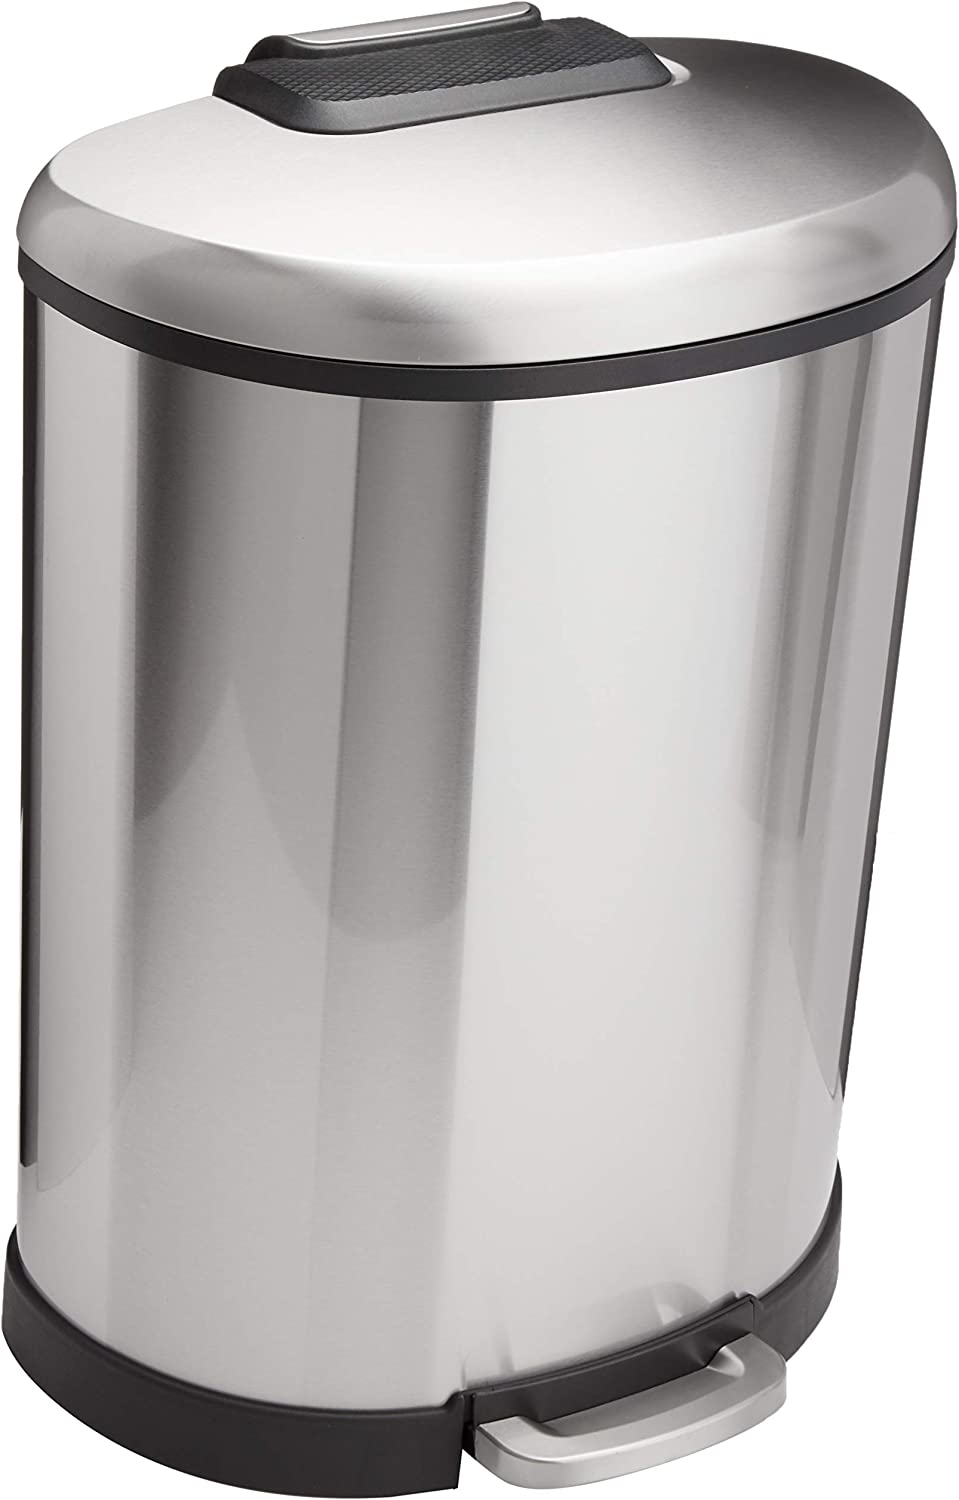 AmazonBasics D-Shaped Soft-Close Trash Can - 50L